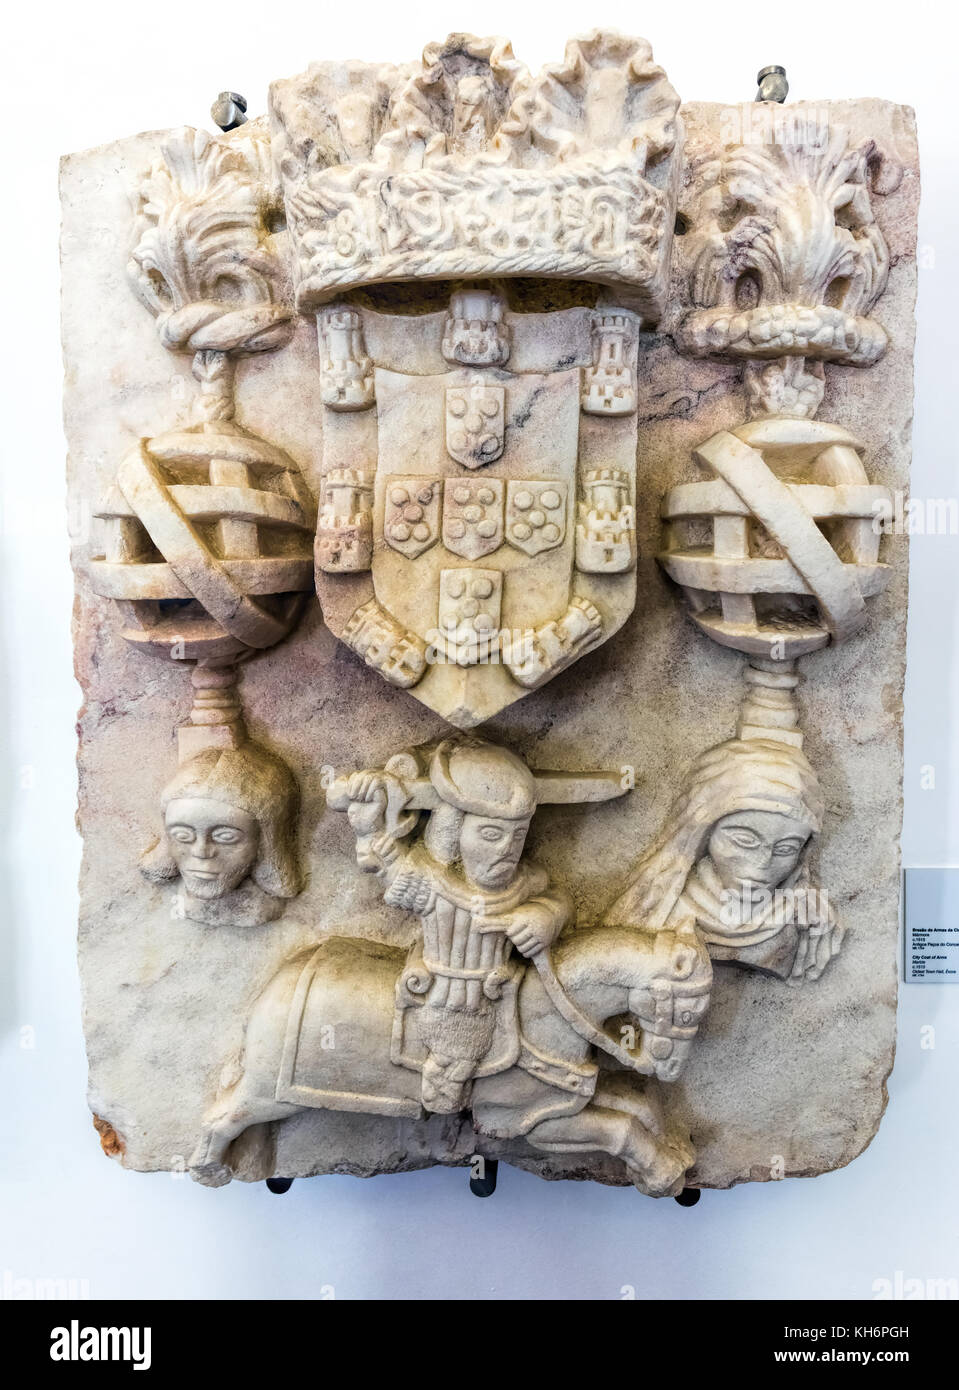 Evora Museum in Evora, Portugal. Marble Coat of Arms of City of Evora, early 16th century. - Stock Image